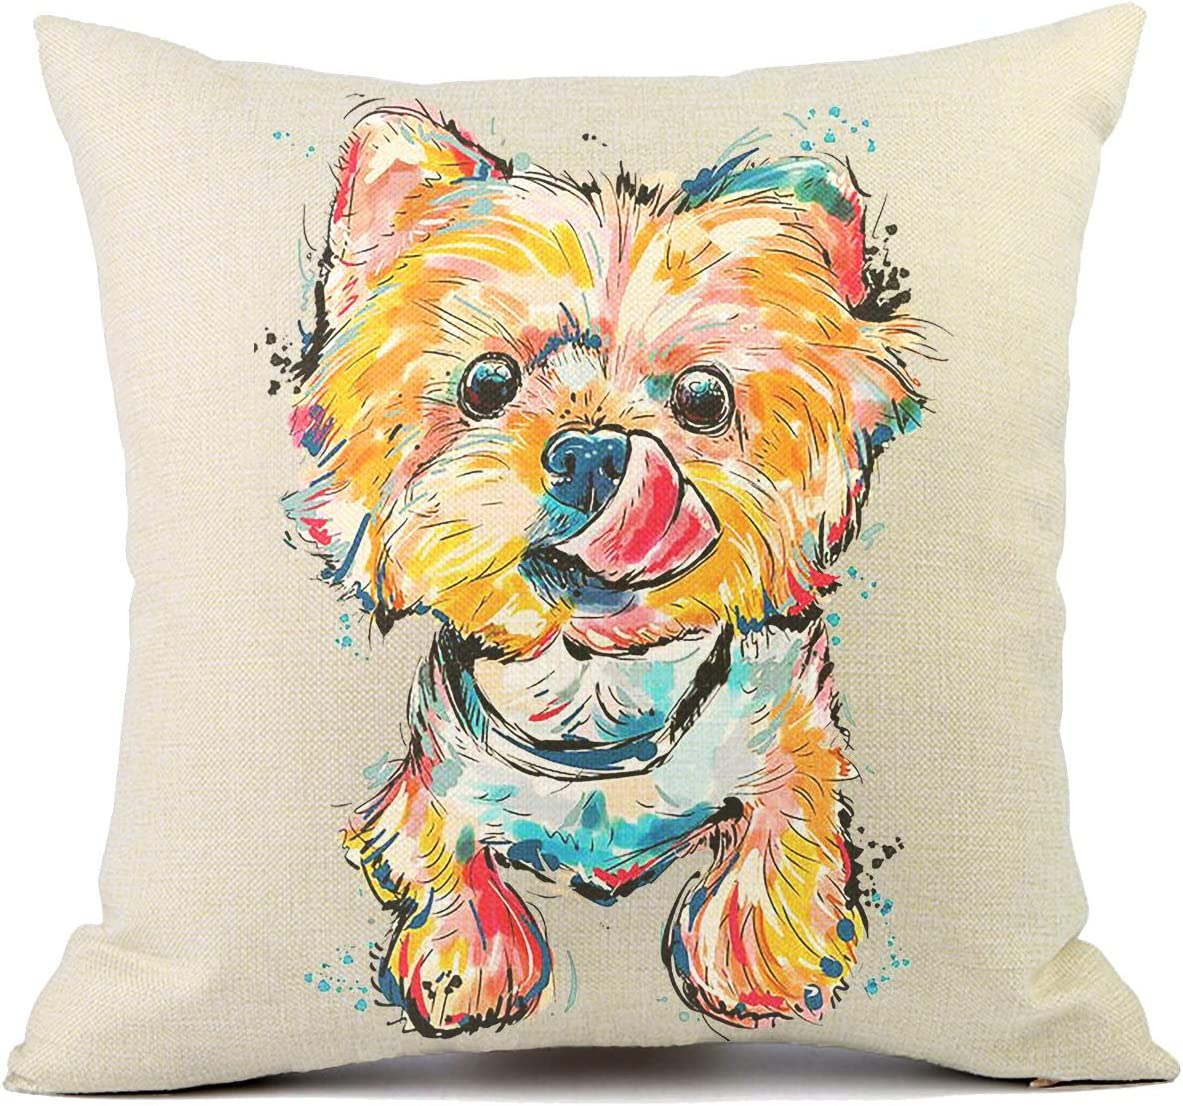 VIOAPLEM Cute Pet Yorkshire Dog Cushion Covers Cotton Linen Sofa Decorative Throw Pillow Cases for Home Decor 18×18 Inch